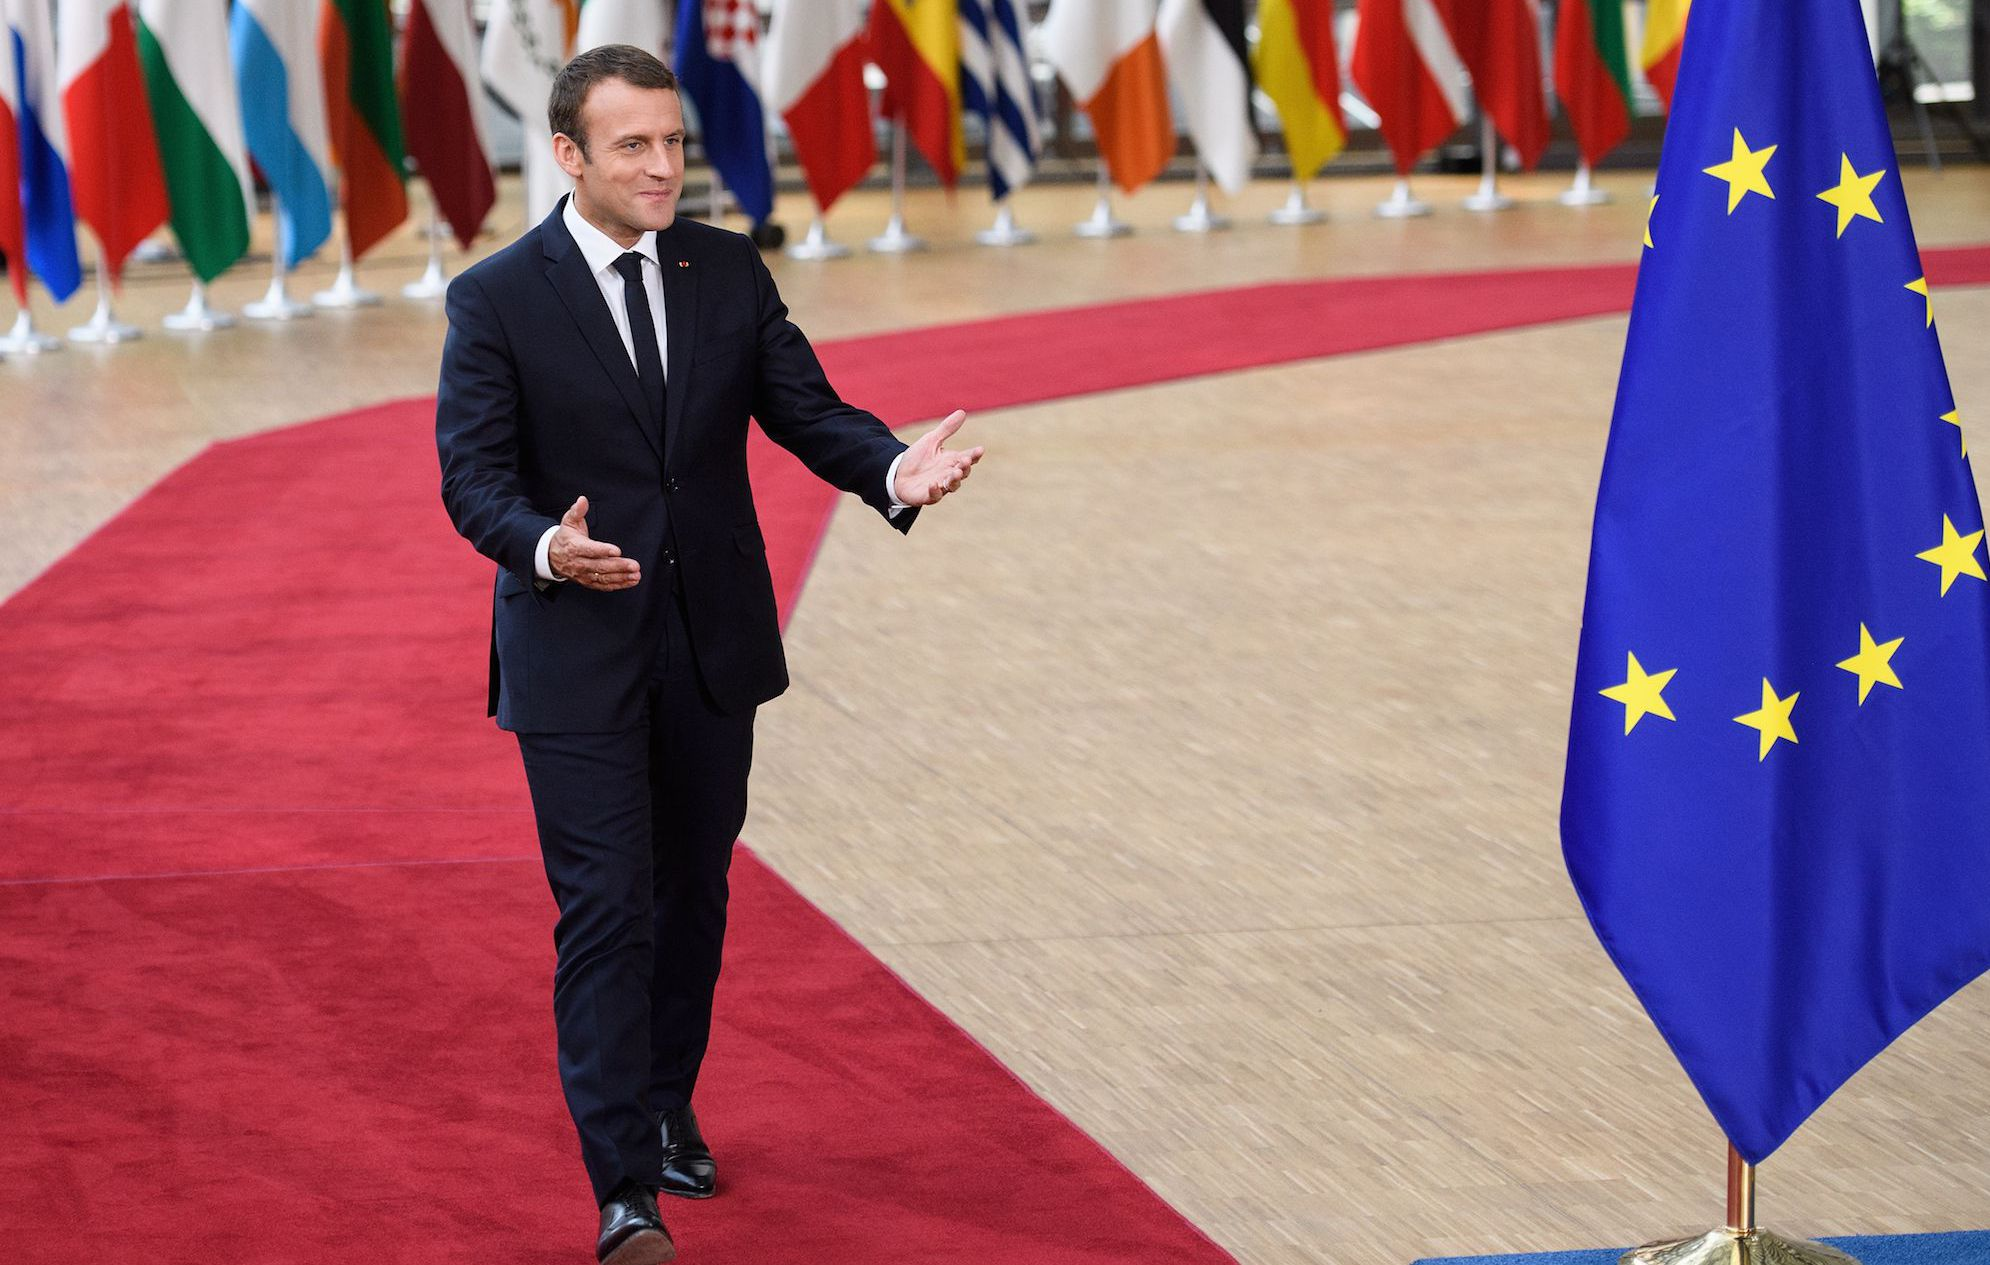 BRUSSELS, BELGIUM - JUNE 22:  French President Emmanuel Macron arrives for his first summit since winning the Presidency, at the EU Council headquarters ahead of a European Council meeting on June 22, 2017 in Brussels, Belgium.  In the first European summit since she lost her Commons majority in the general election, British Prime Minister Theresa May will outline her plans for the issue of expats' rights after Brexit. (Photo by Leon Neal/Getty Images)